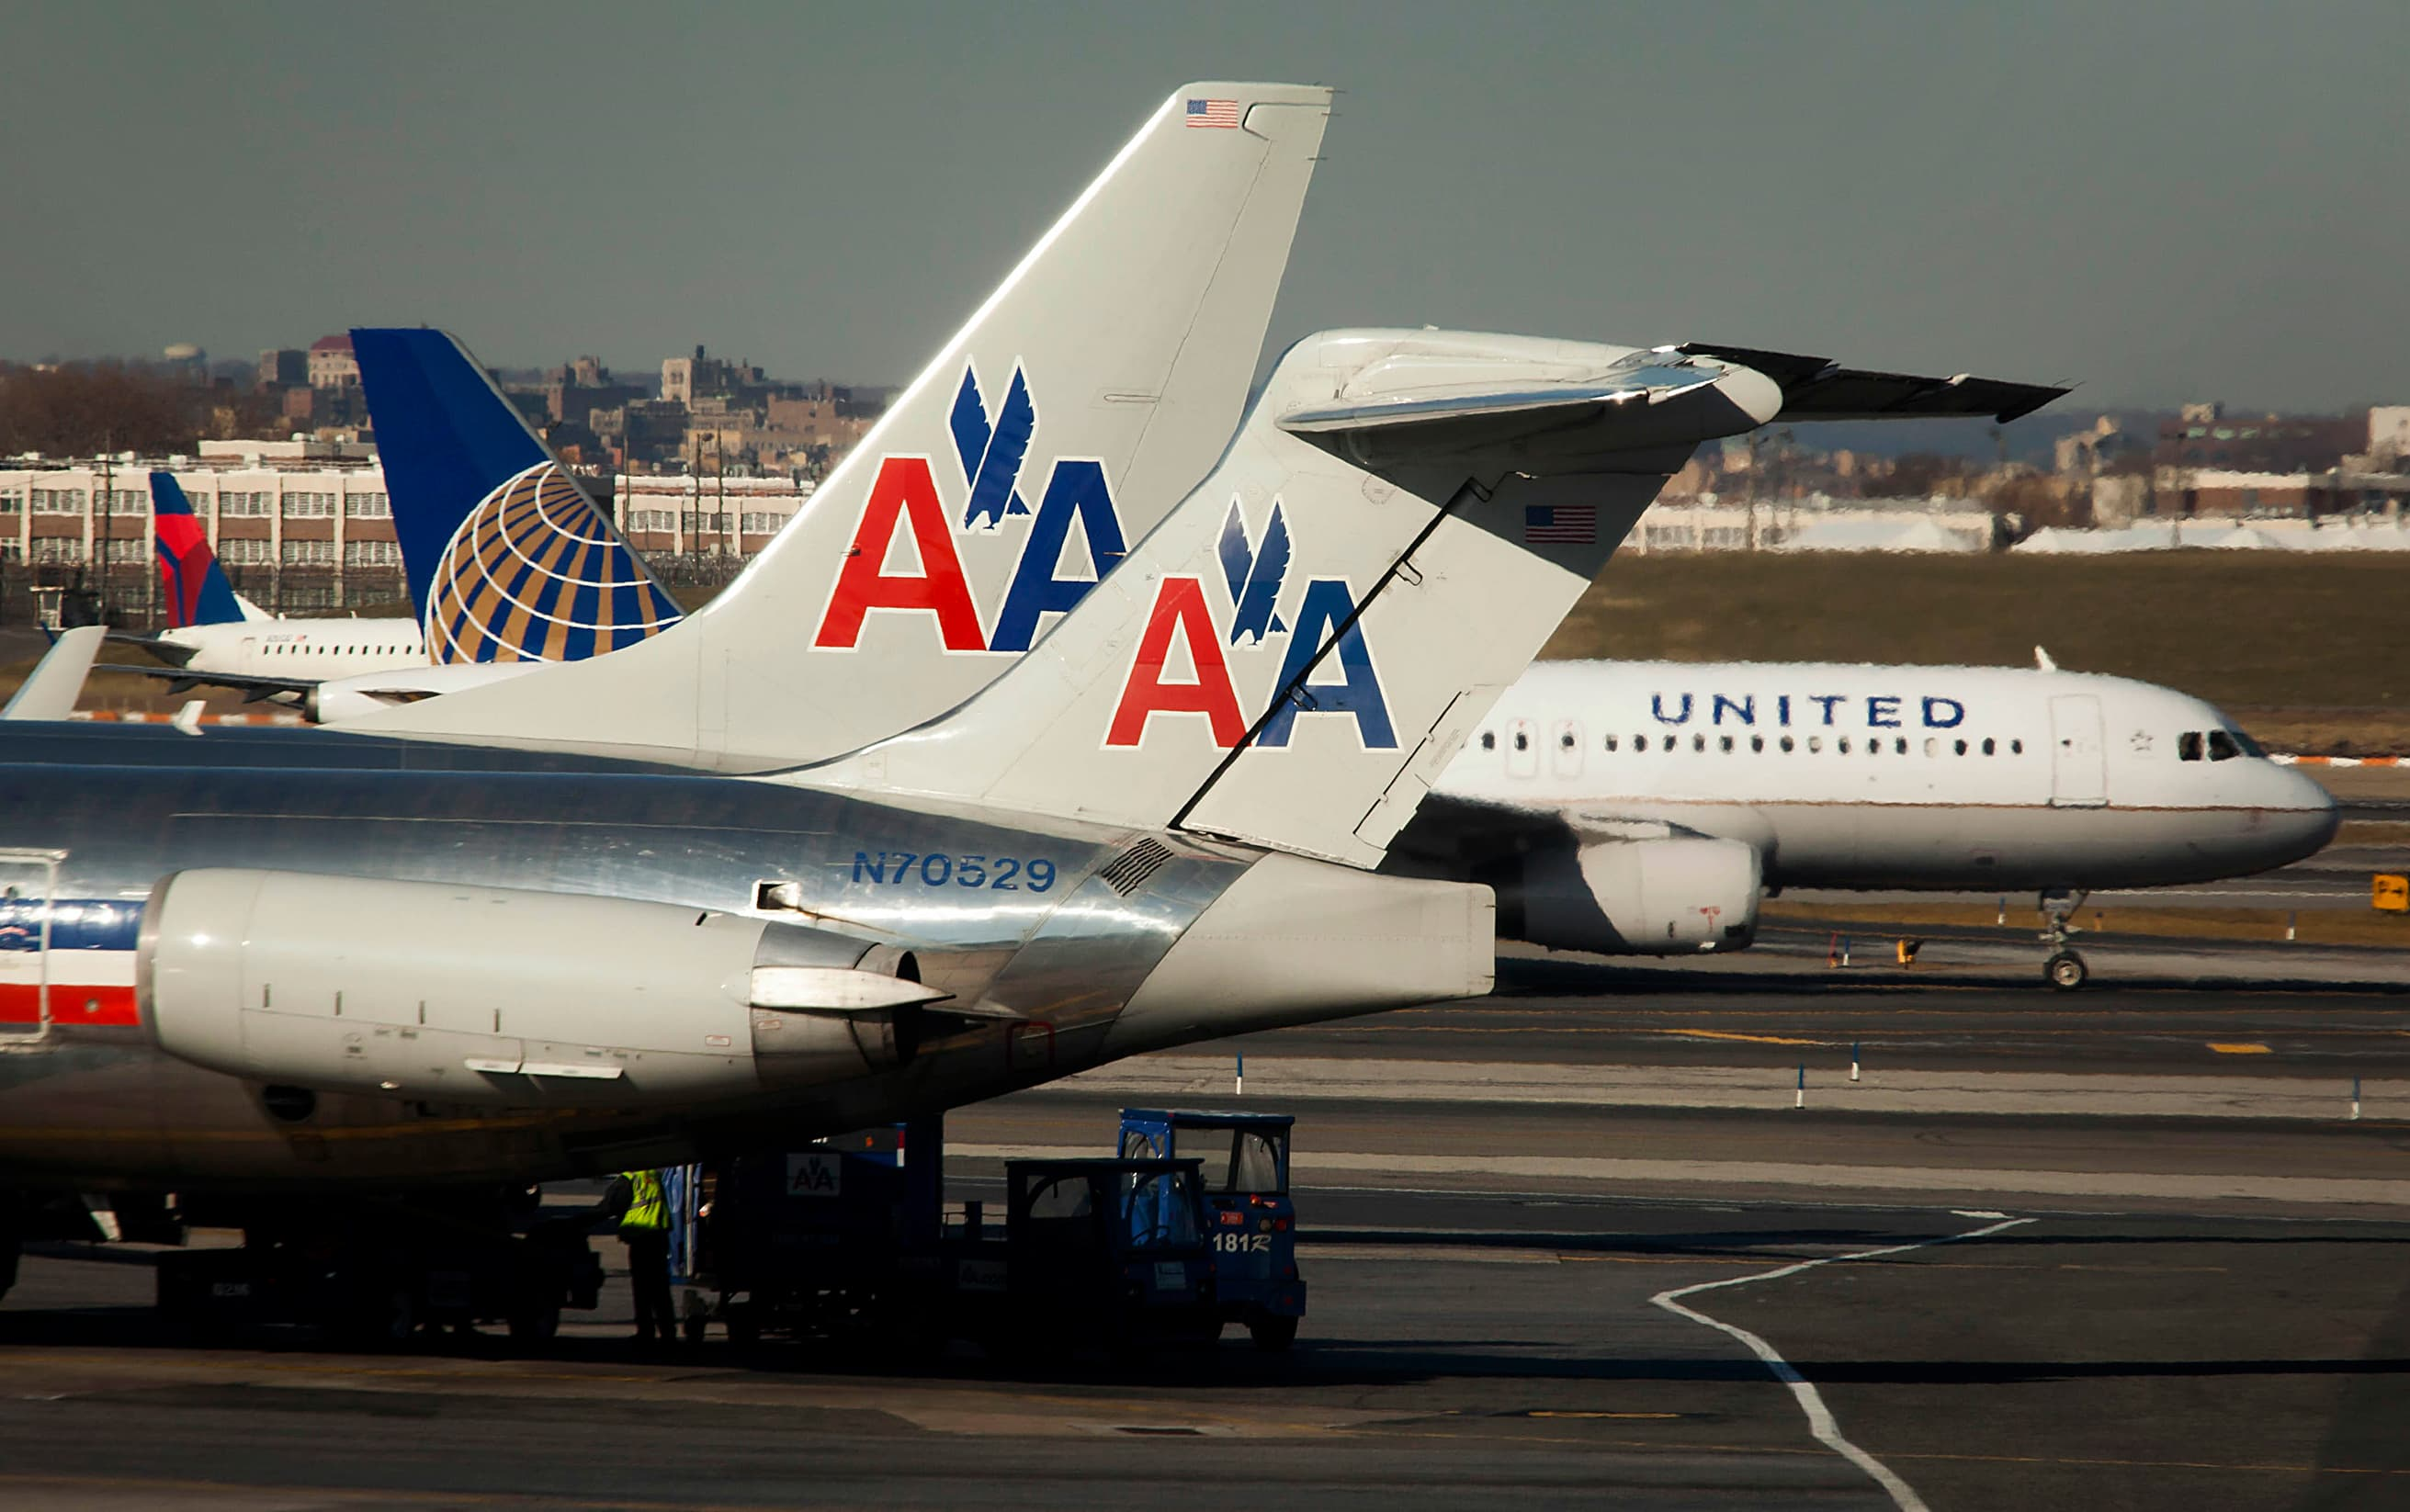 Consolidating flights to US cities could help stem airline losses